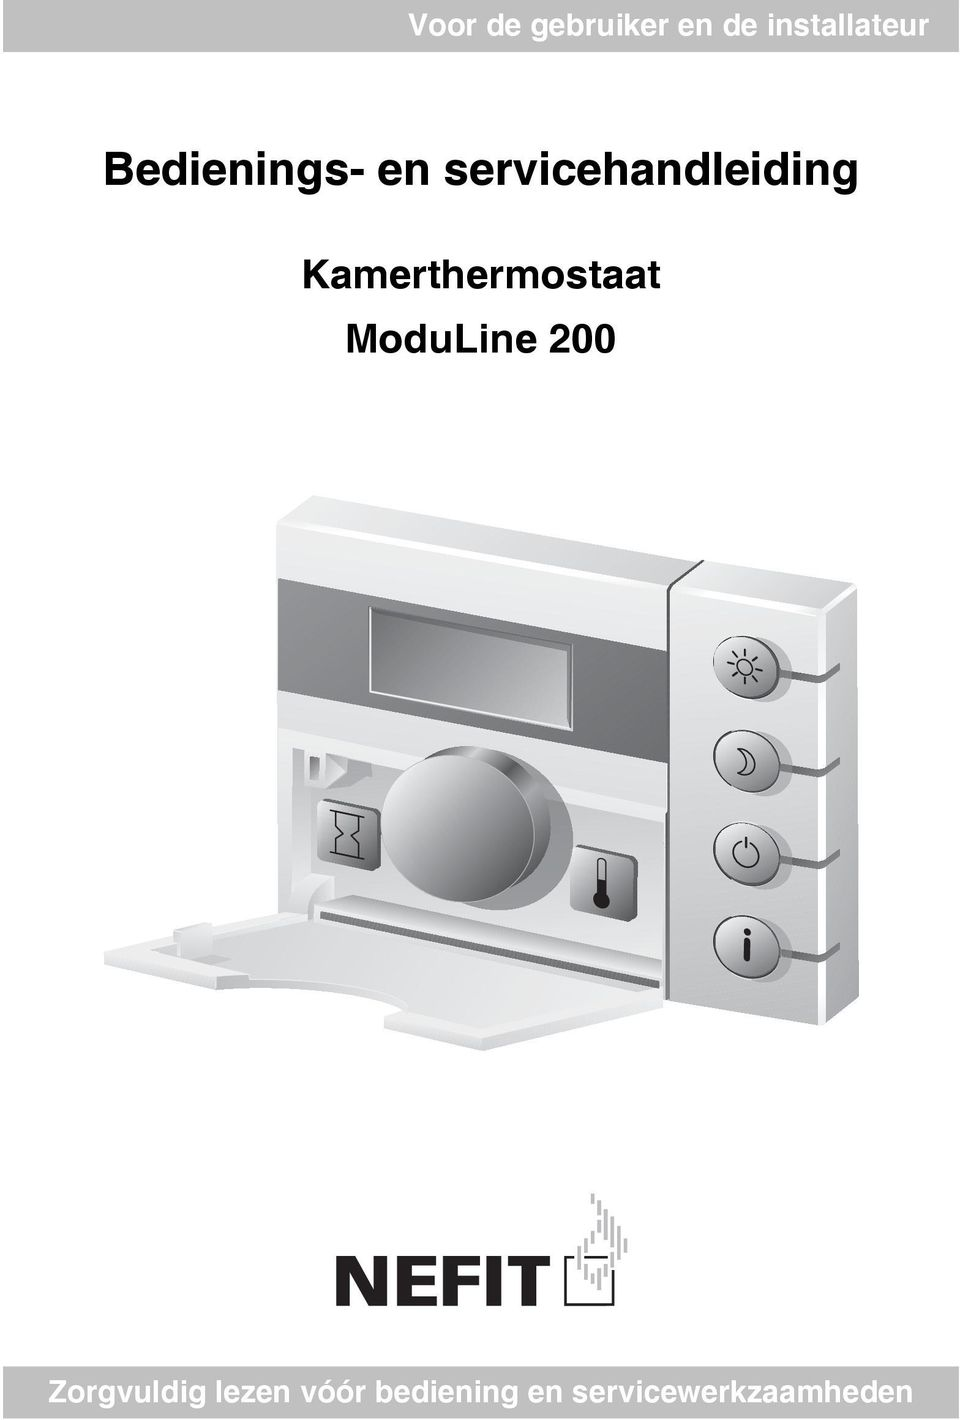 Kamerthermostaat ModuLine 200